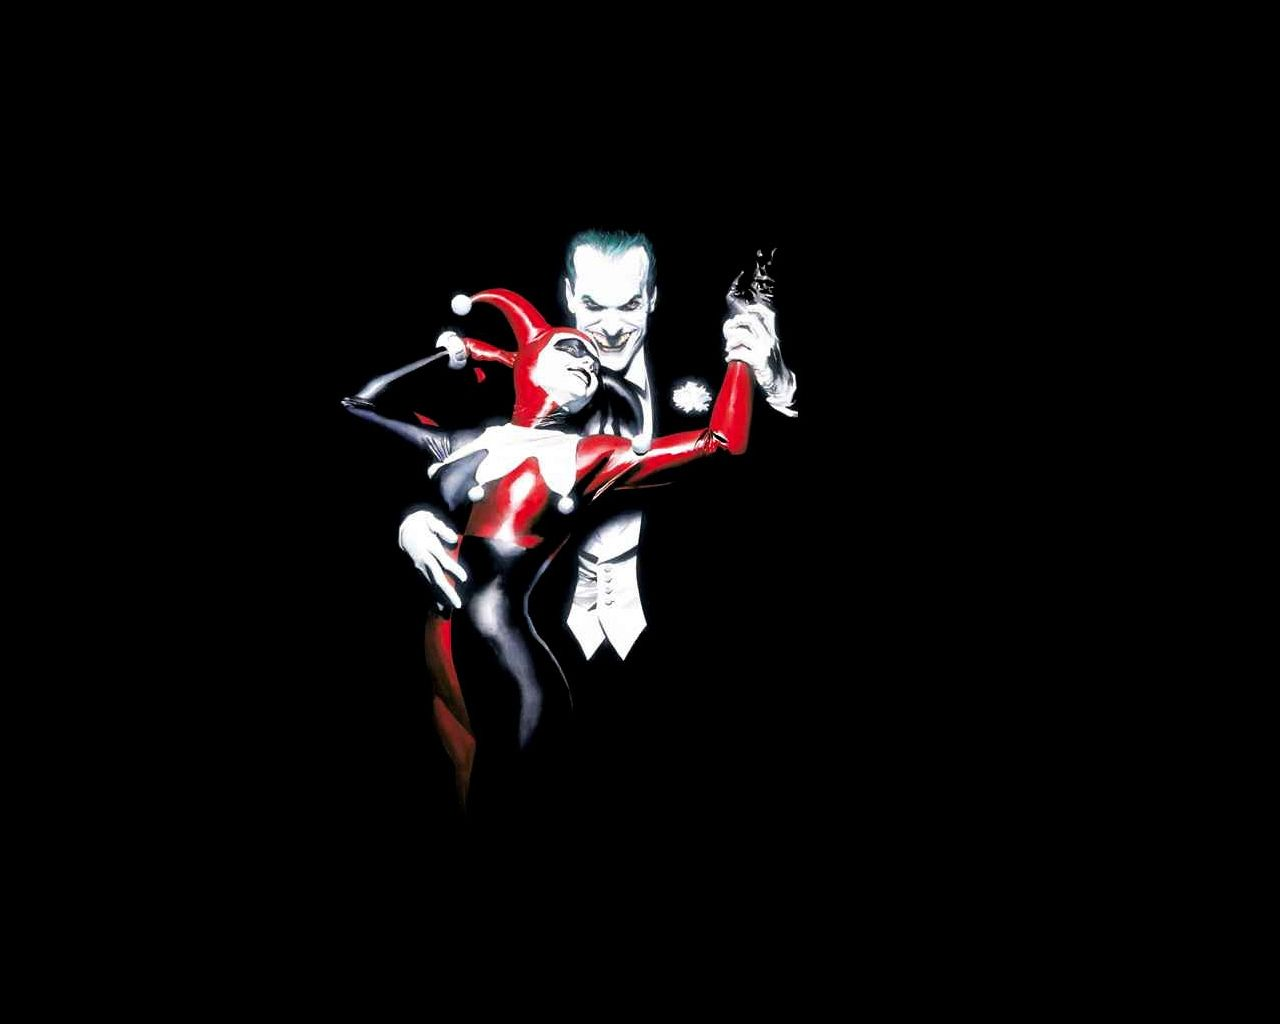 1280x1024 398 Harley Quinn HD Wallpapers | Background Images - Wallpaper Abyss ...